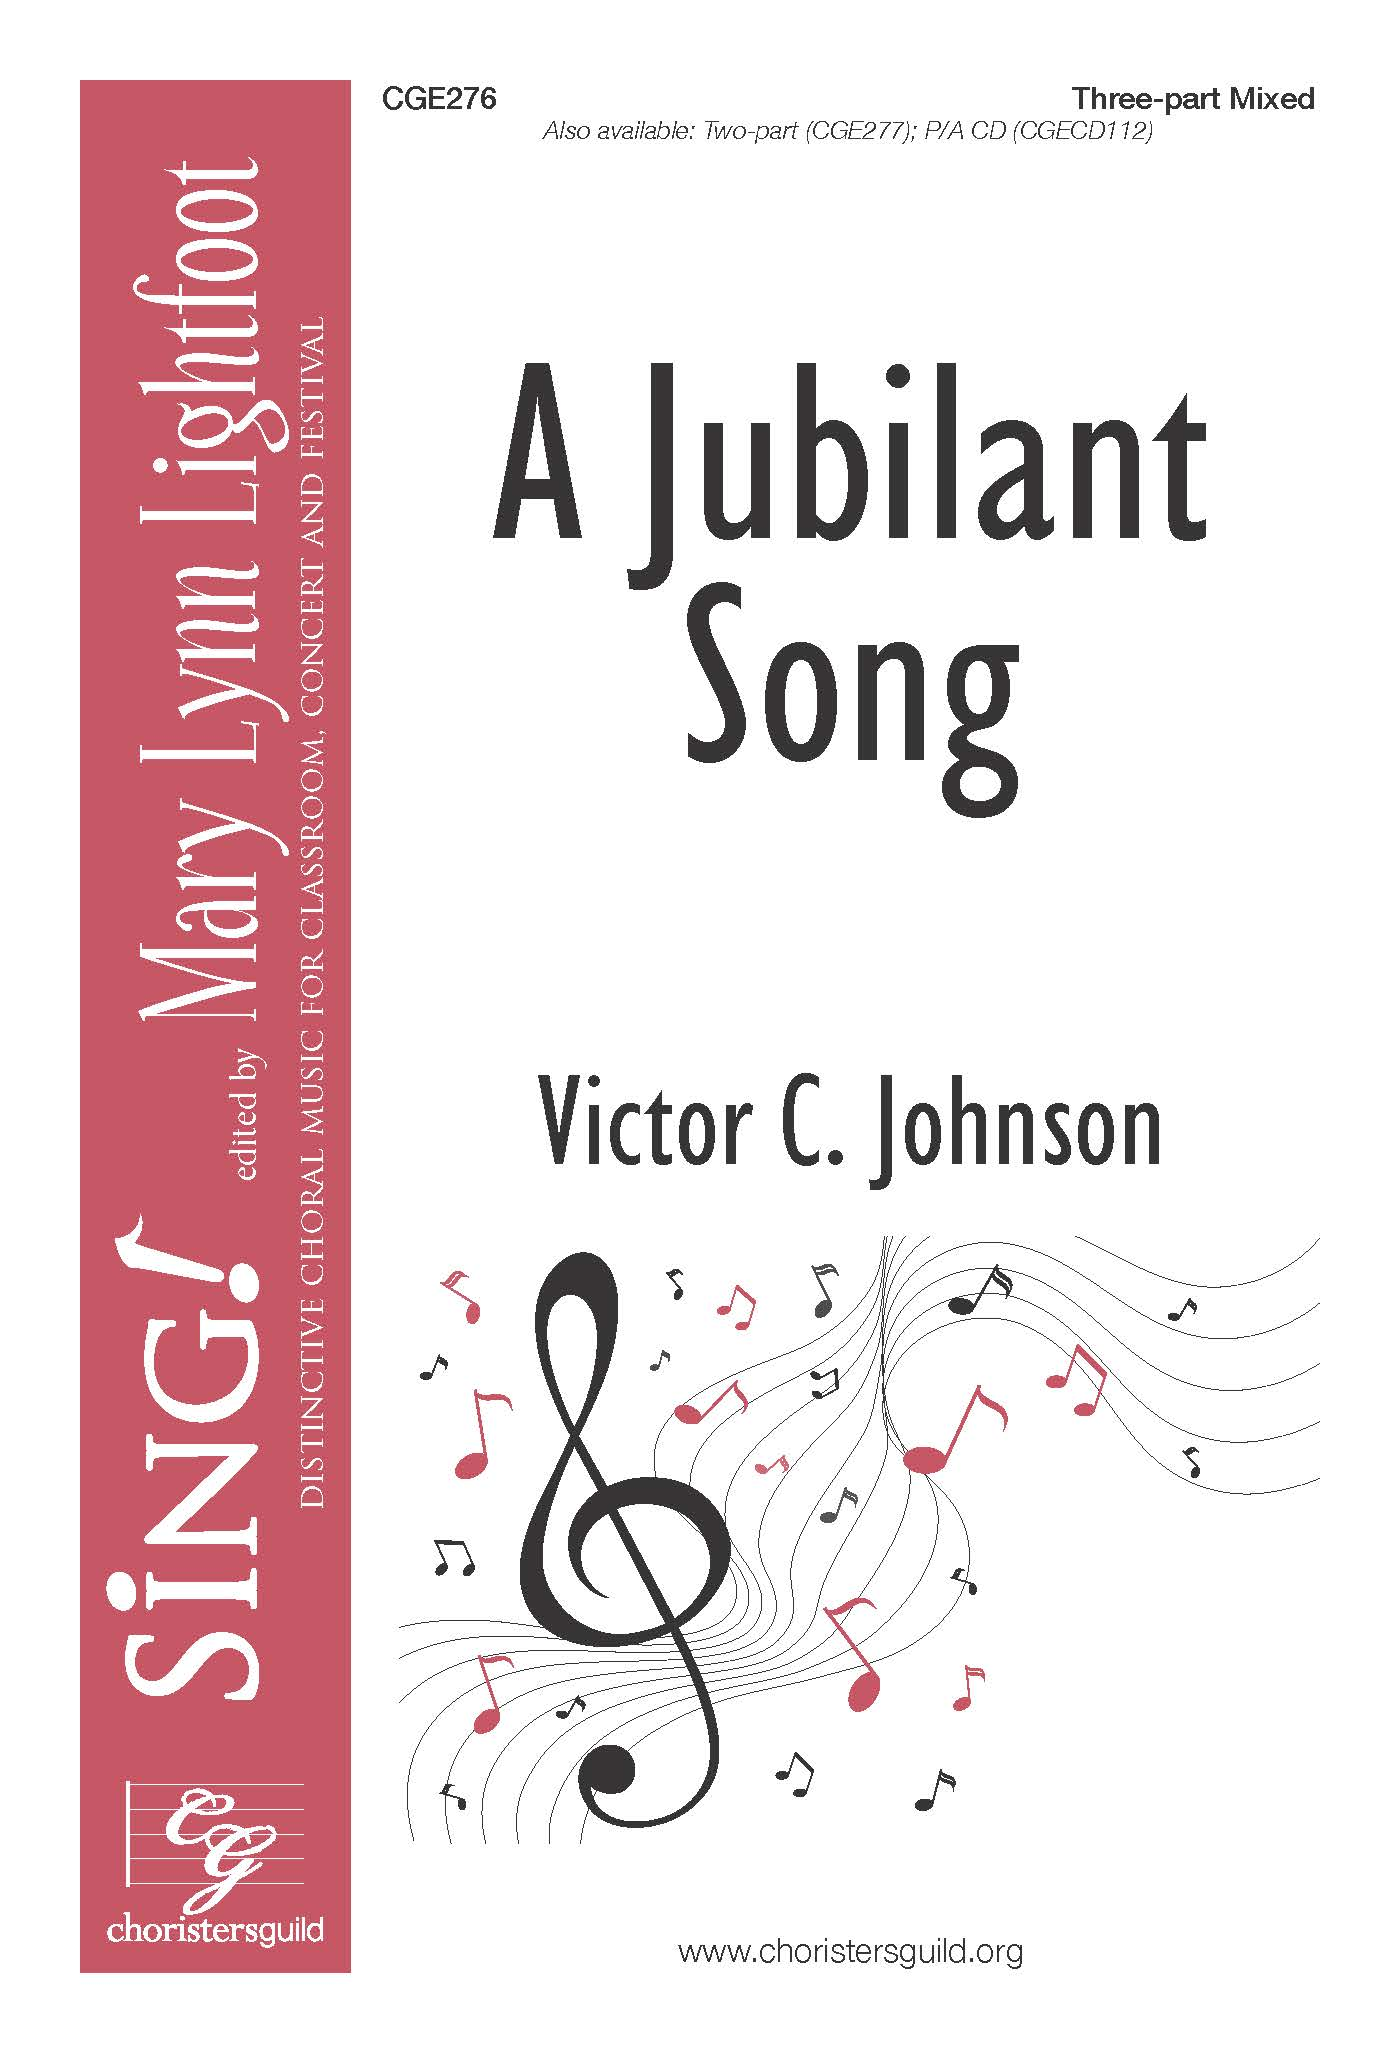 A Jubilant Song Three-part Mixed